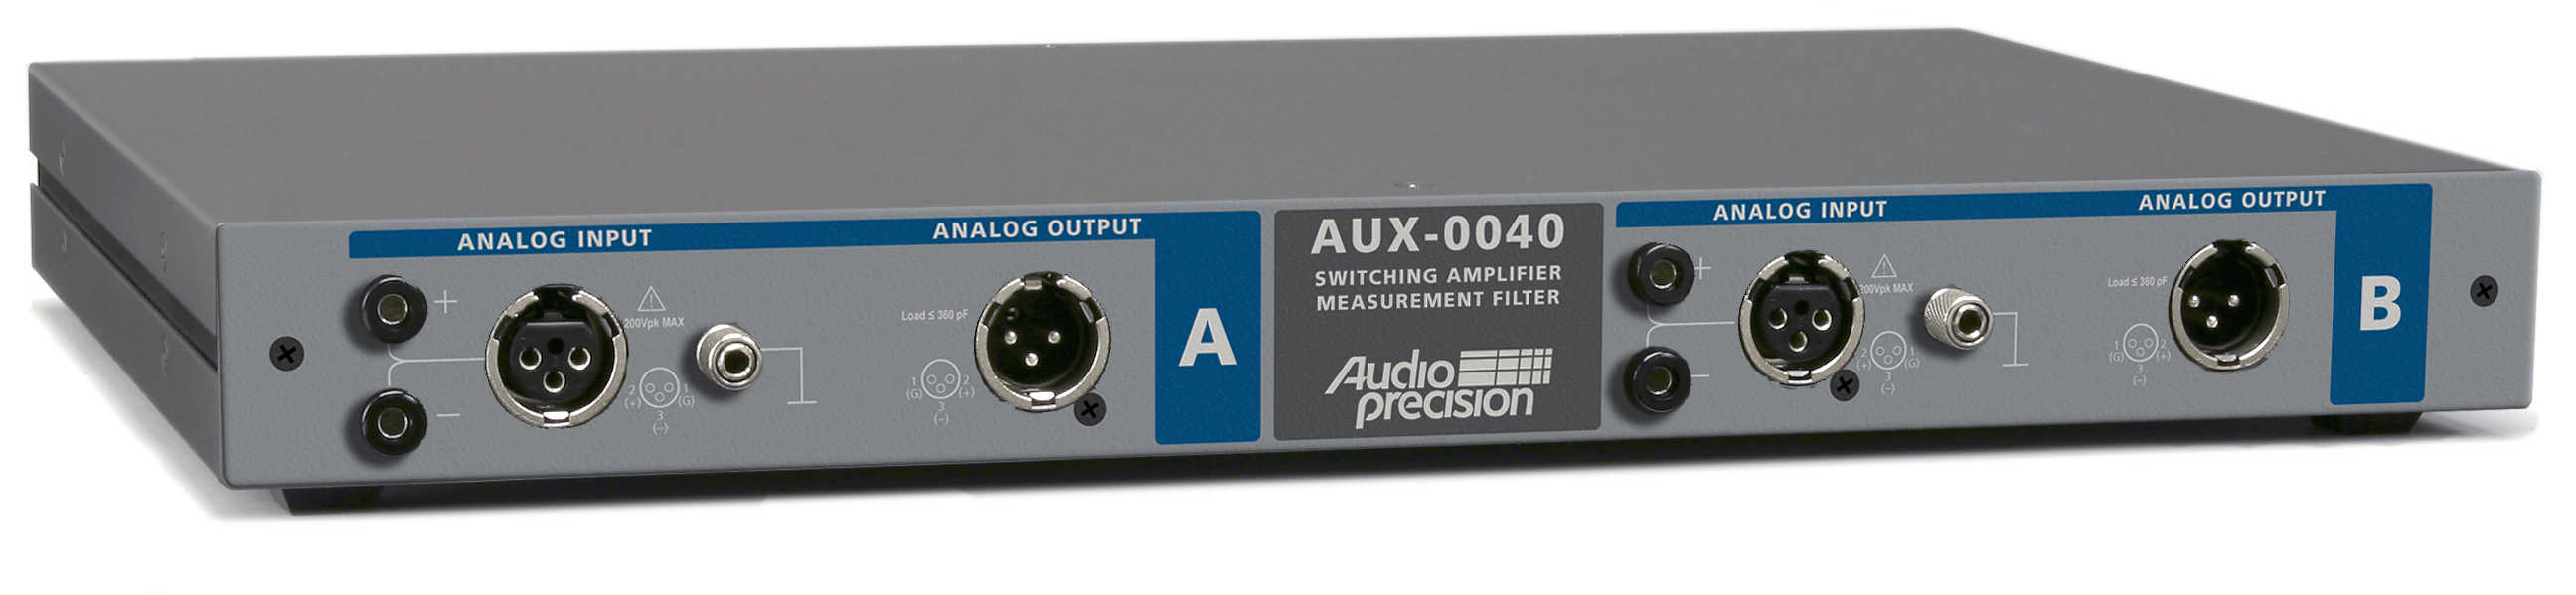 Aux 0025 0040 0100 Switching Amplifier Measurement Filters Noise Filter For Stereo System The Is A Two Channel Passive With 20 Hz To Khz Passband It Designed Be Used Analyzers Including Apx555